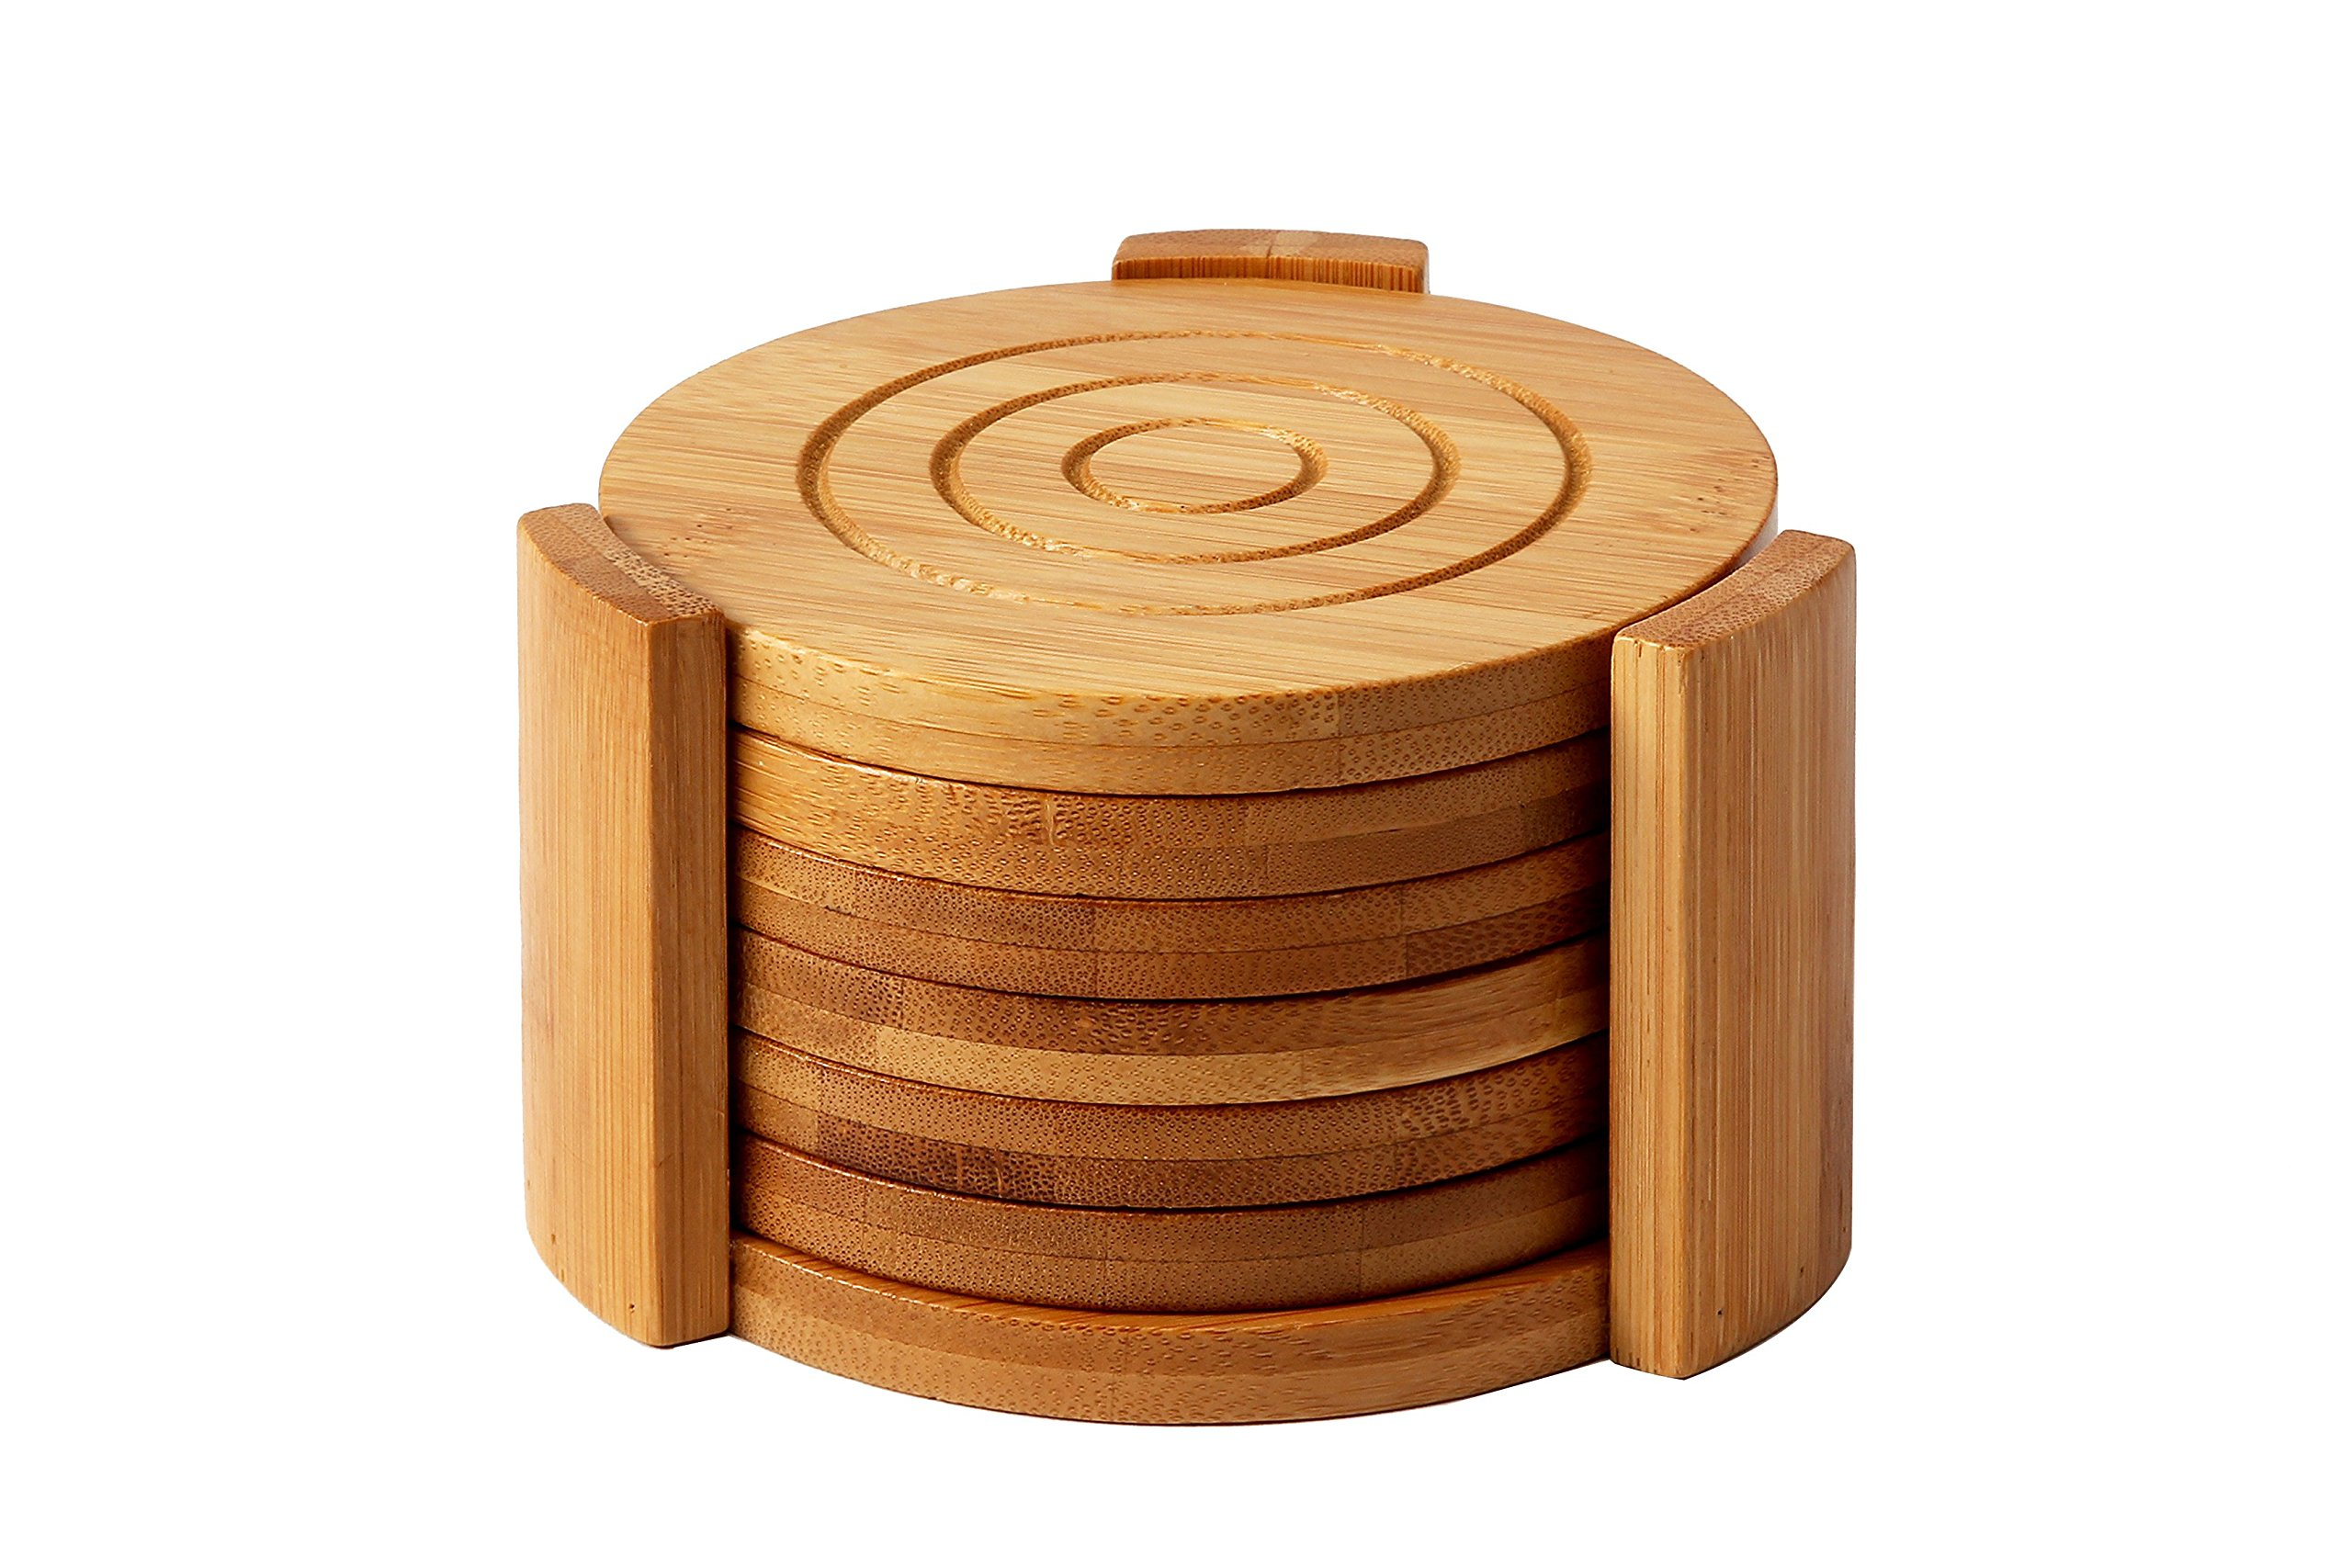 Juvale Bamboo Coasters 6-Pack Set - Absorbent Condensation Wooden Coasters Holder - Round Cup Coasters Cold Drinks Hot Beverage, Contemporary Design - Tan, 4.3 inches